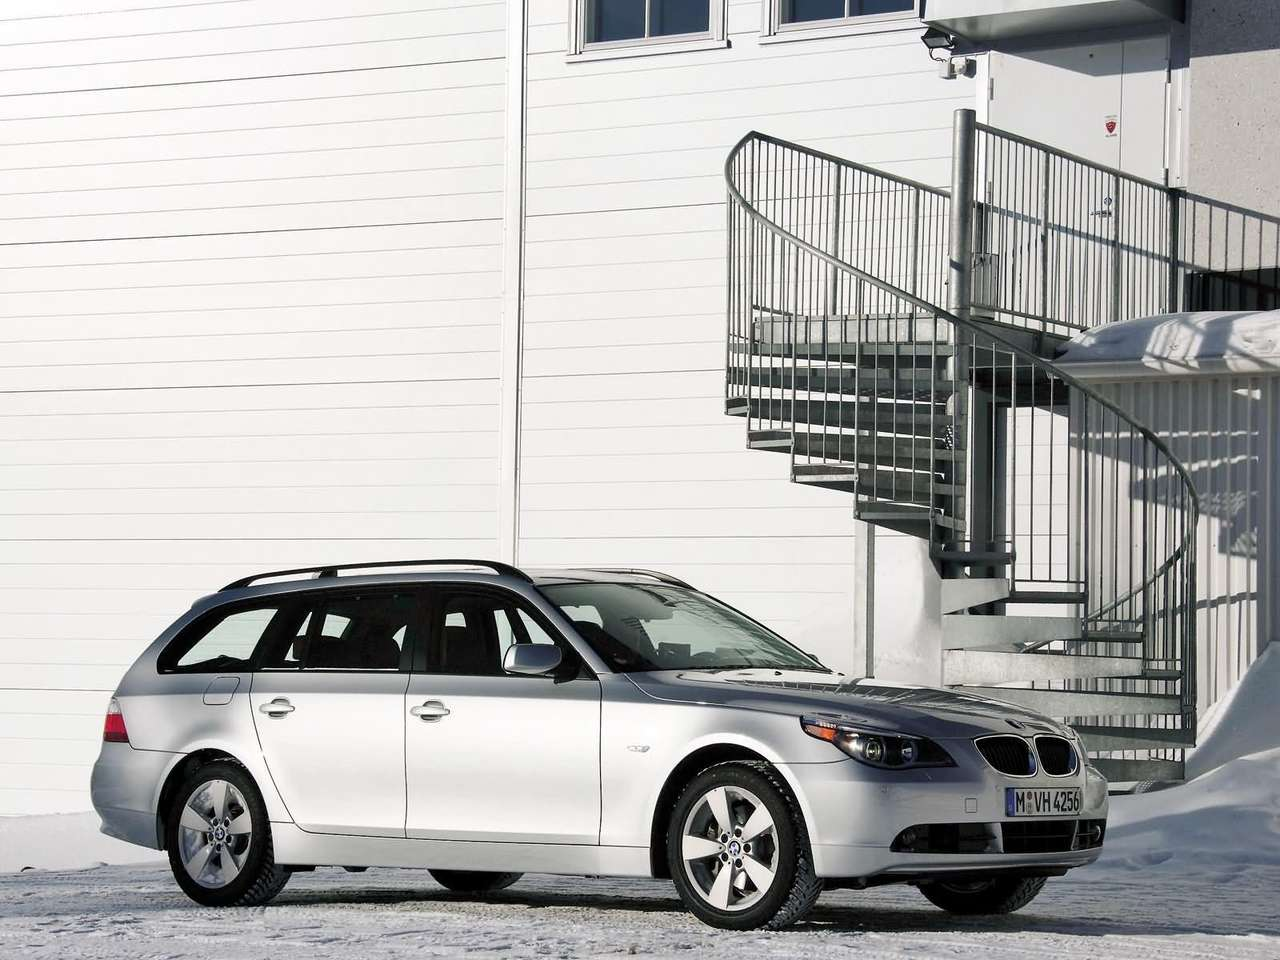 performance of cars: 2005 BMW 530xi Touring